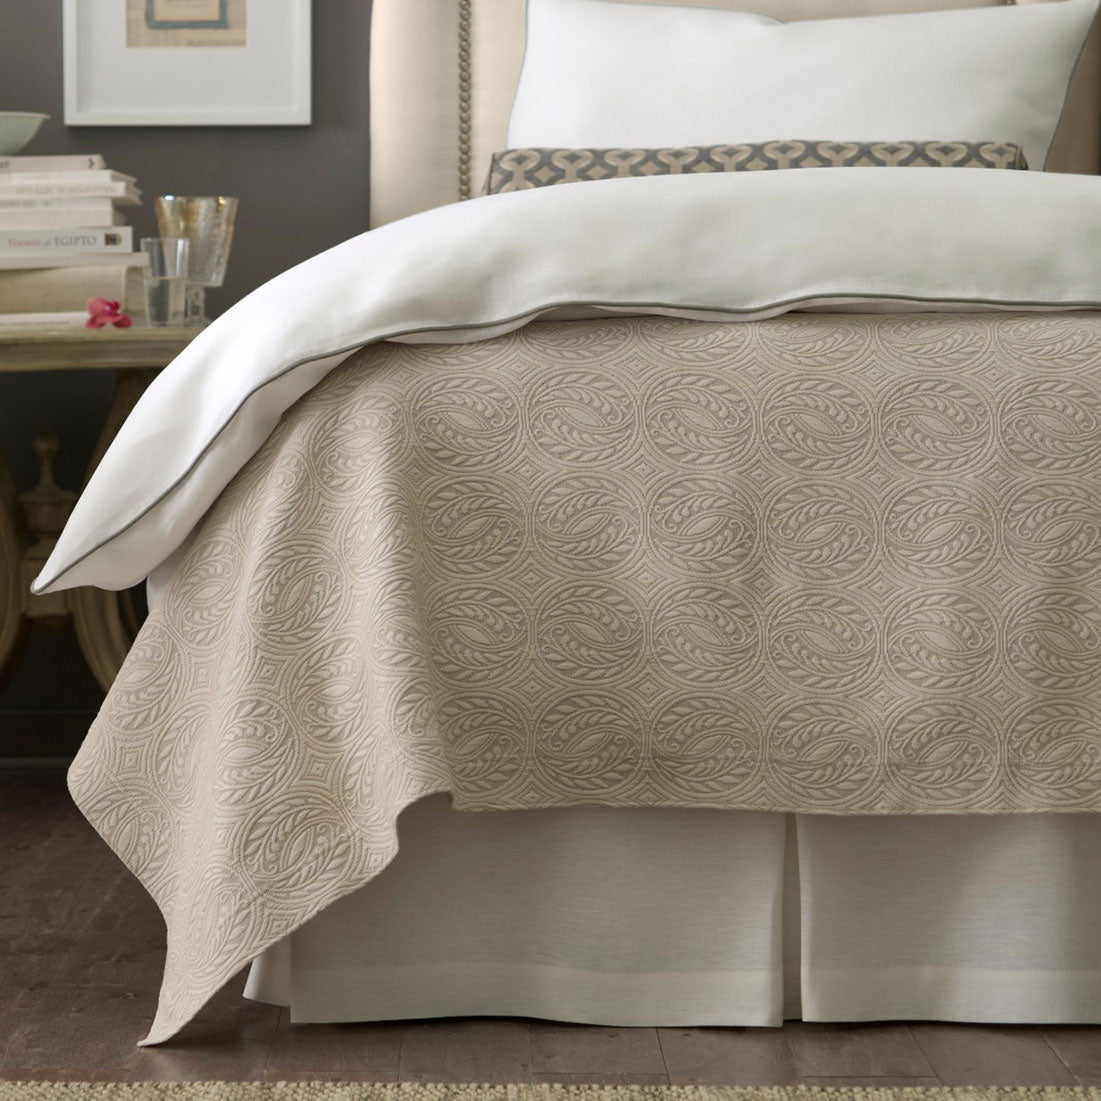 Rio Bed Skirt shown with Vienna coverlet in linen and Mandalay Duvet Cover